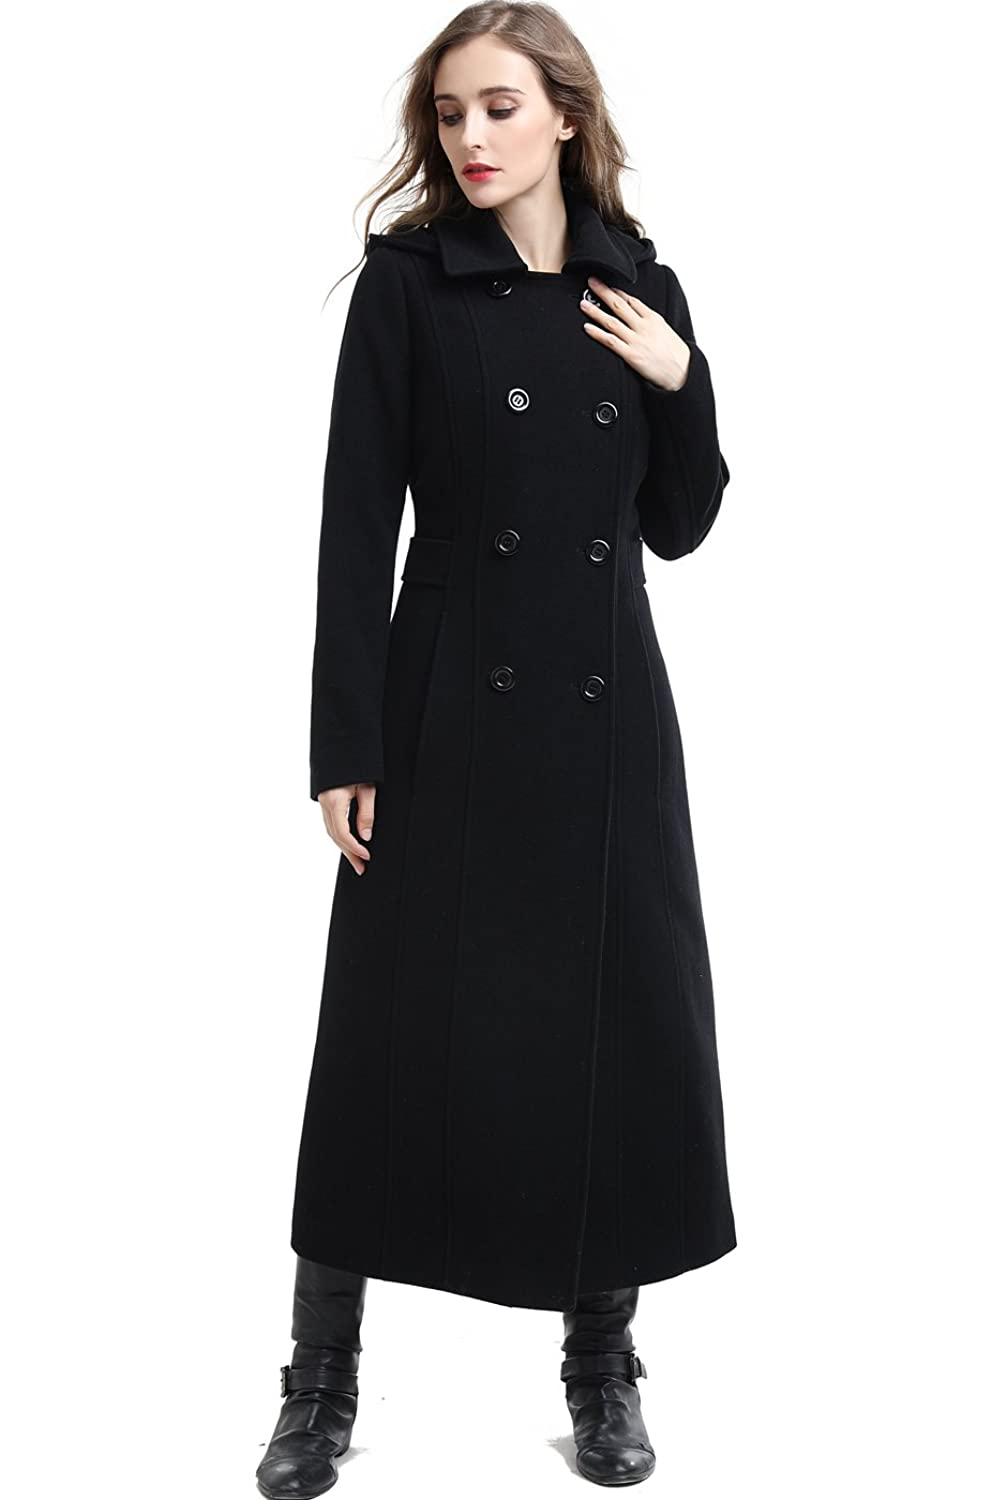 1940s Coats & Jackets Fashion History BGSD Womens Mariel Wool Blend Hooded Long Coat $169.00 AT vintagedancer.com